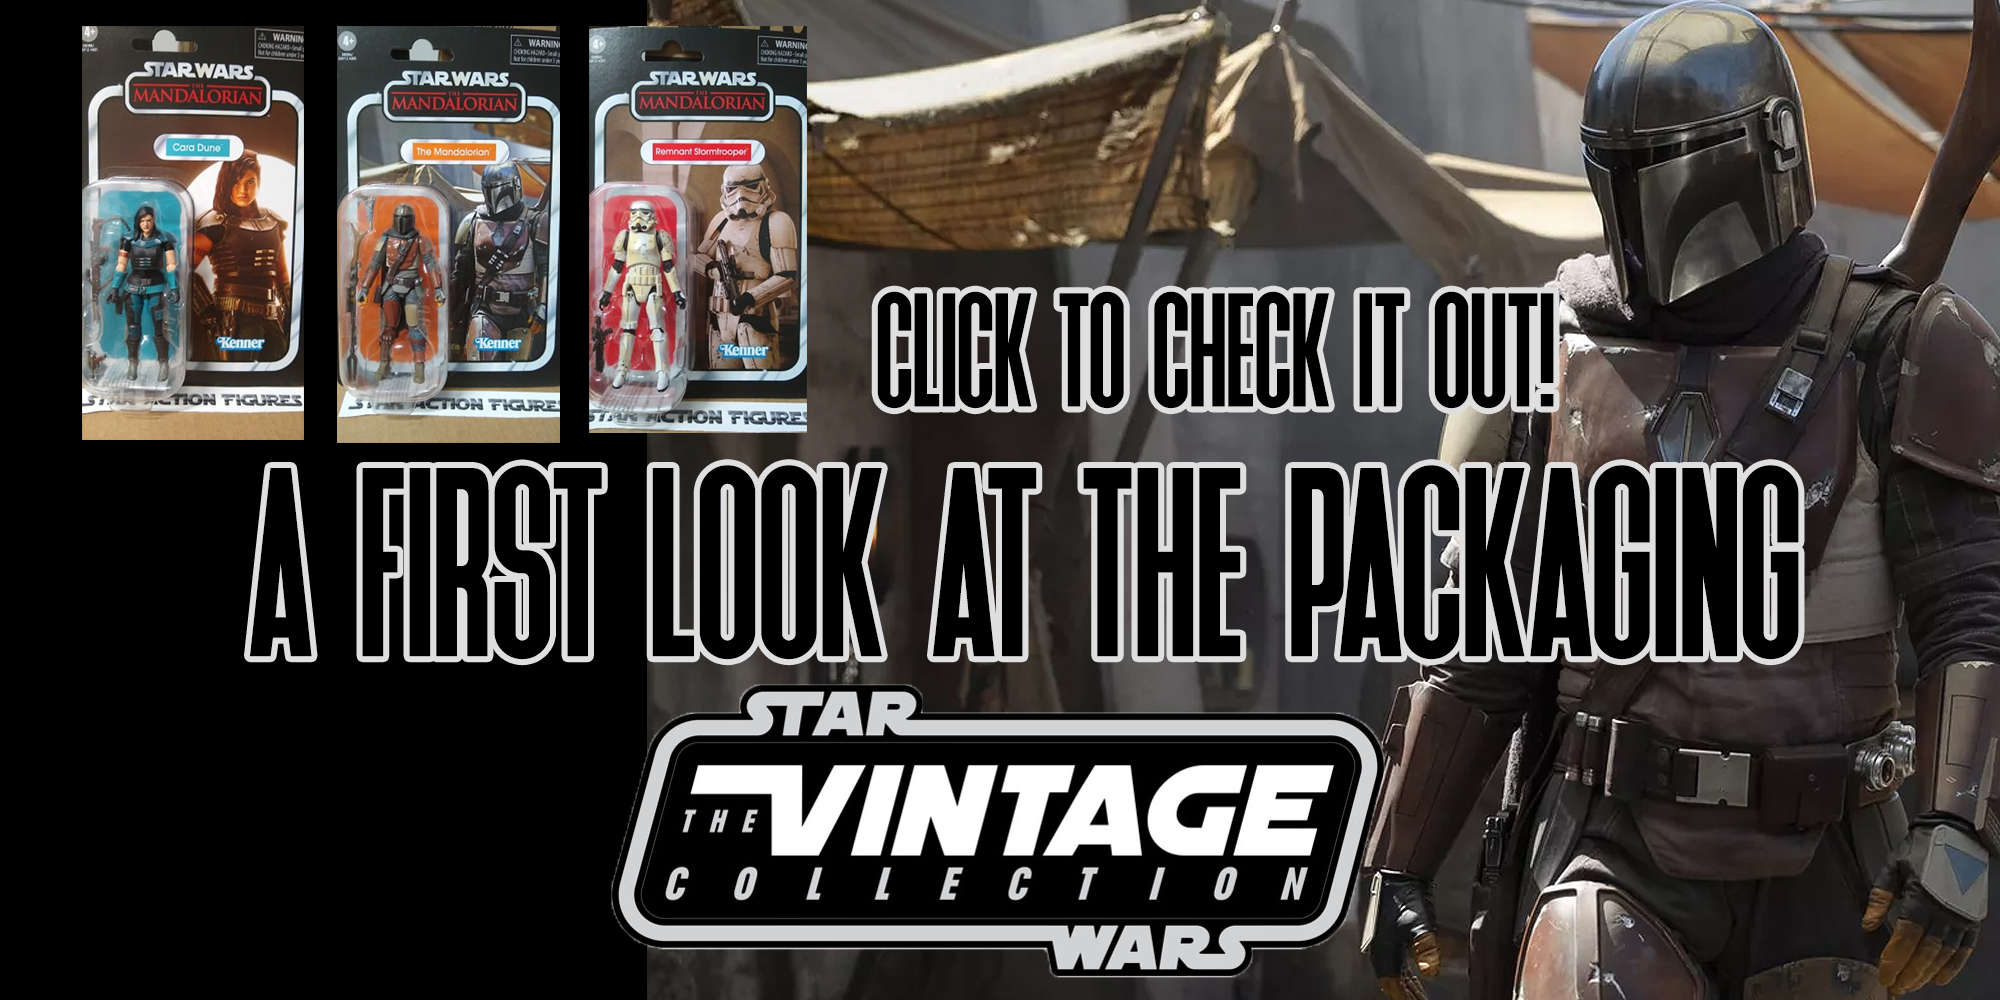 upcoming vintage collection star wars figures